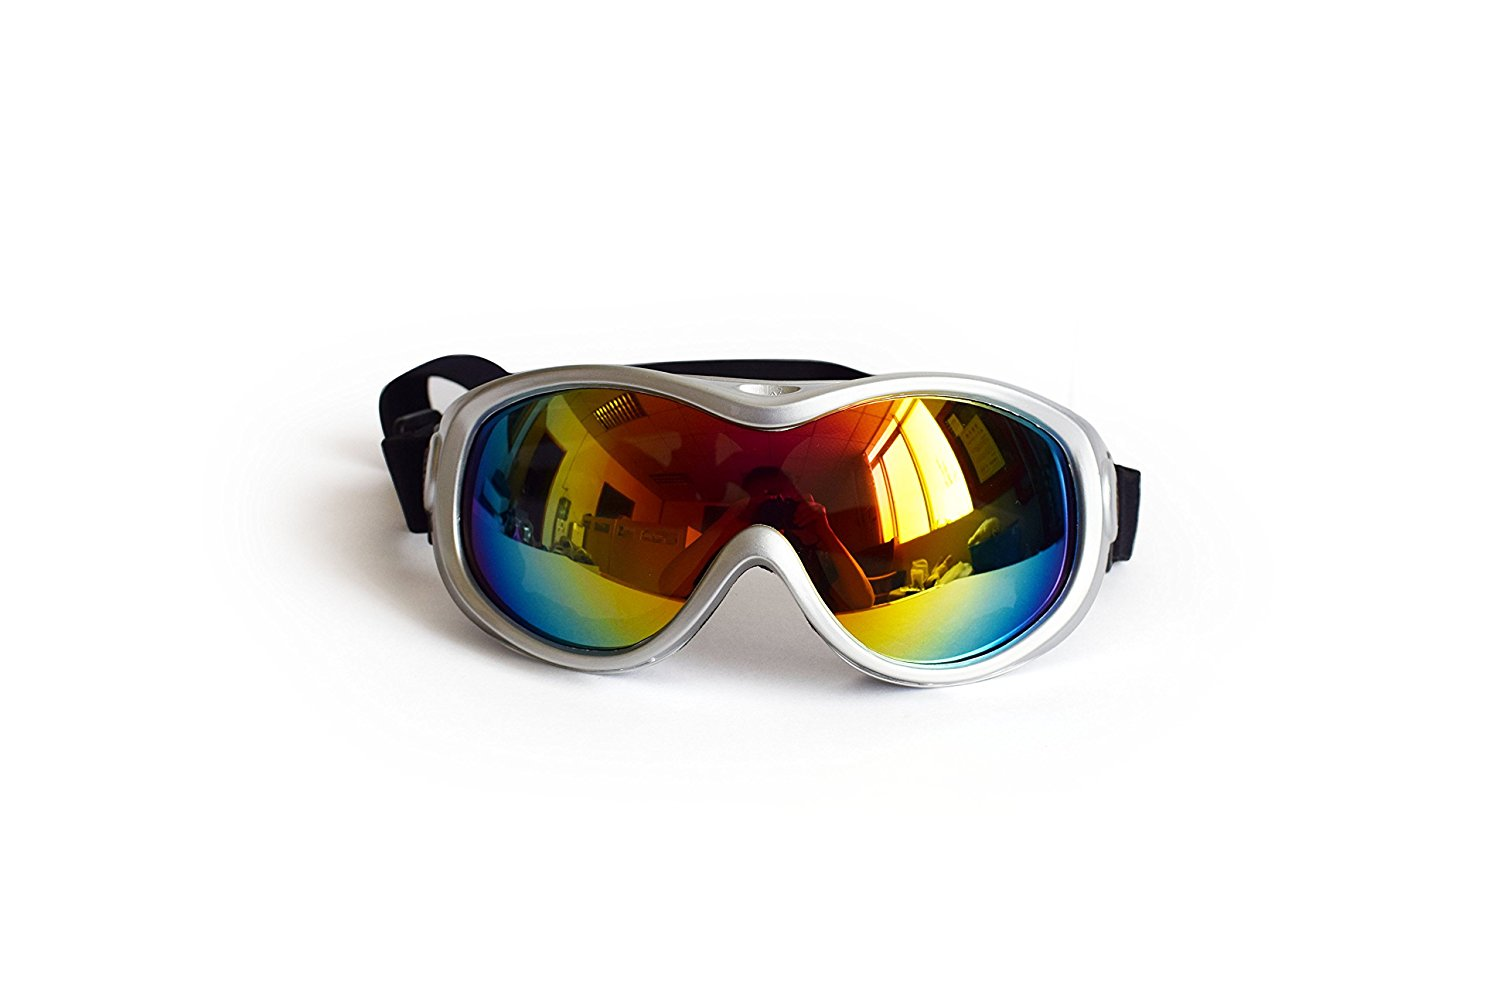 Large Dog Anti-Fog Glasses Snow Skiing Protection Safety Goggles with Removable Starp for Dog Over 15Pounds by